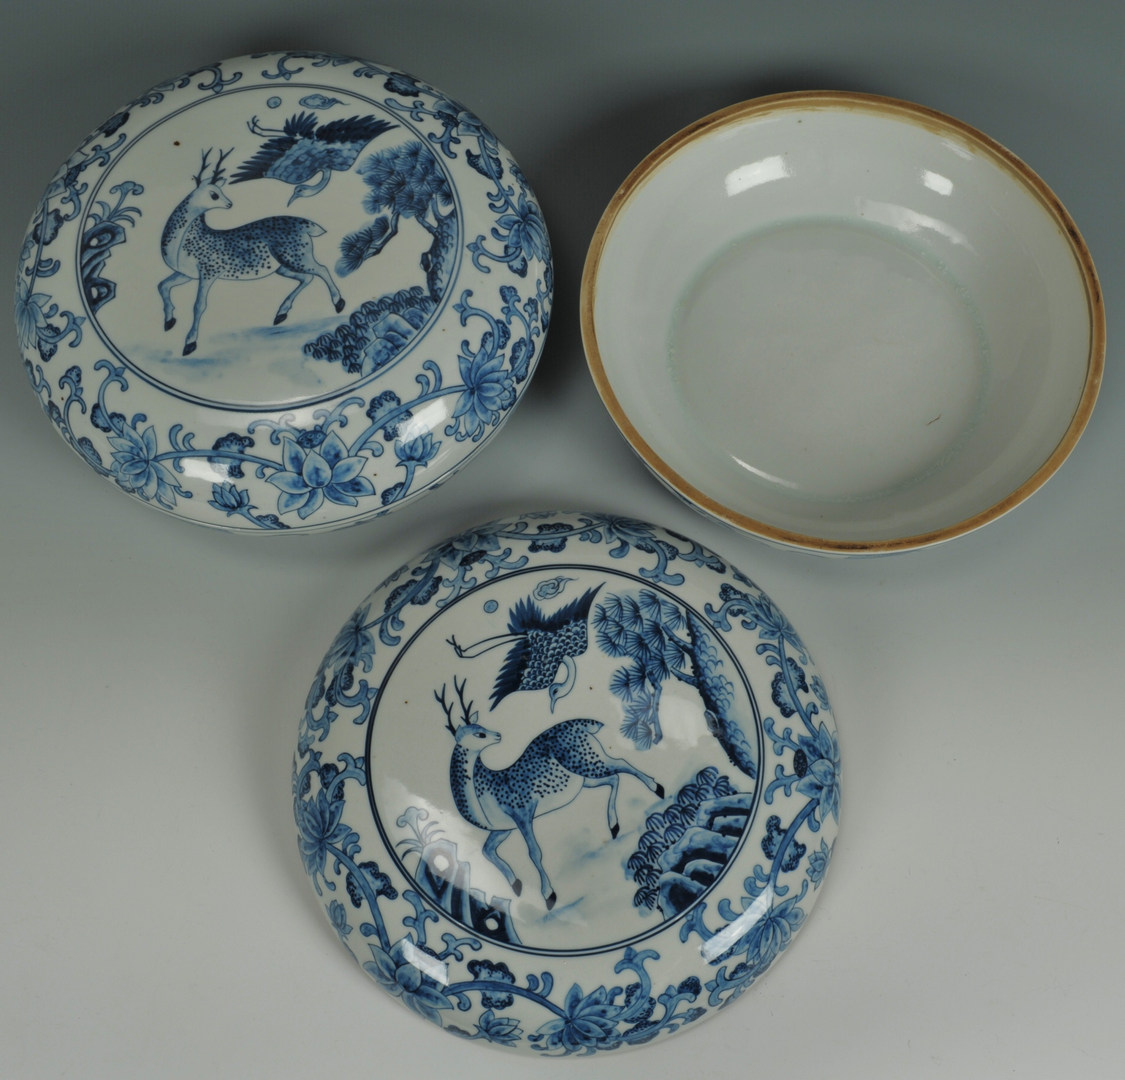 Lot 199: Pair of Chinese Blue & White Covered Bowls